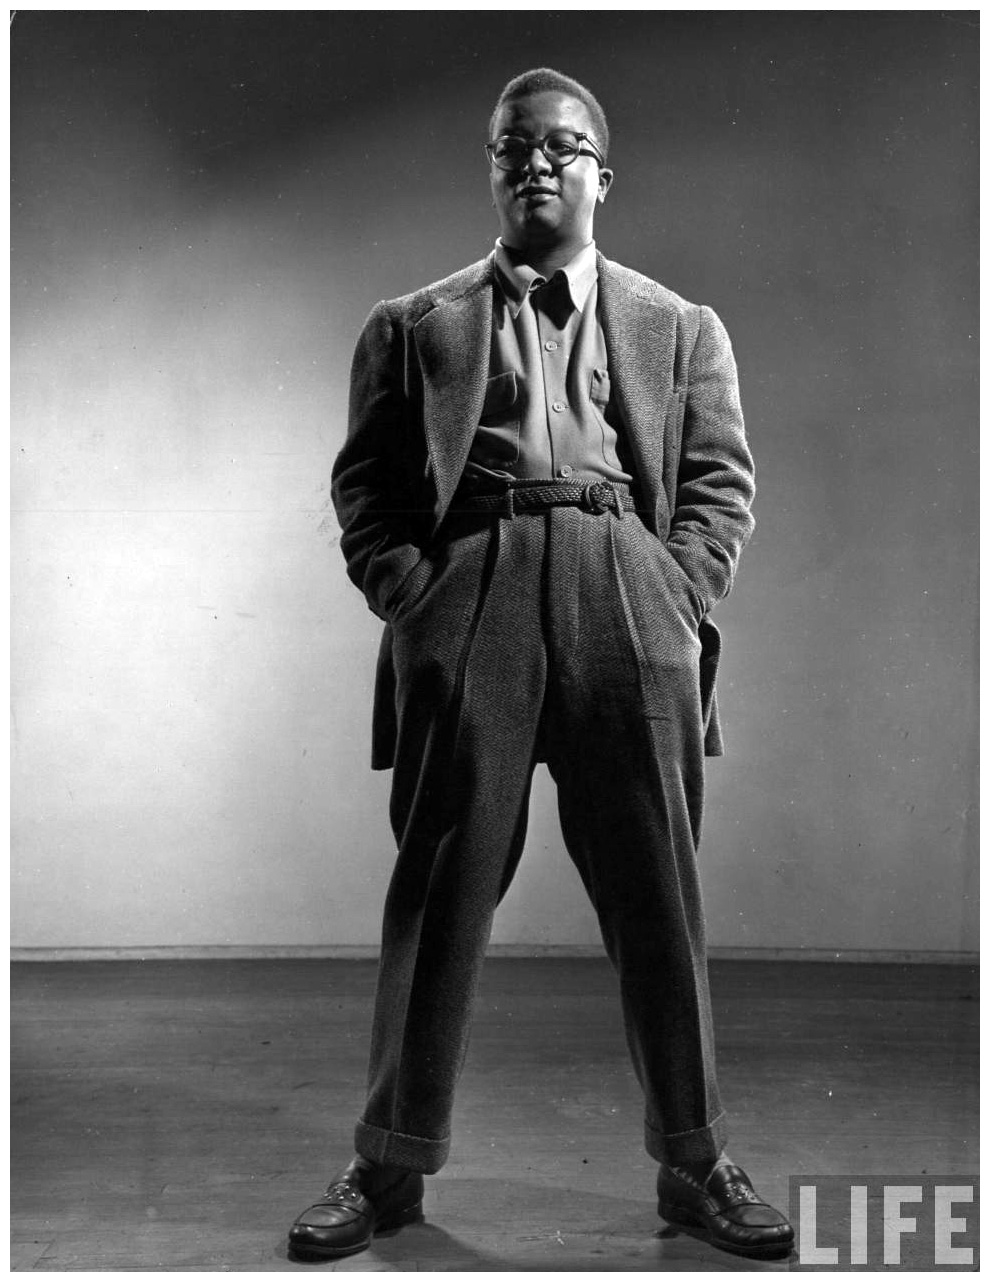 Billy Strayhorn standing tall in a wool suit with hands in his pockets. This photo was in Life Magazine sometime in the 40s.